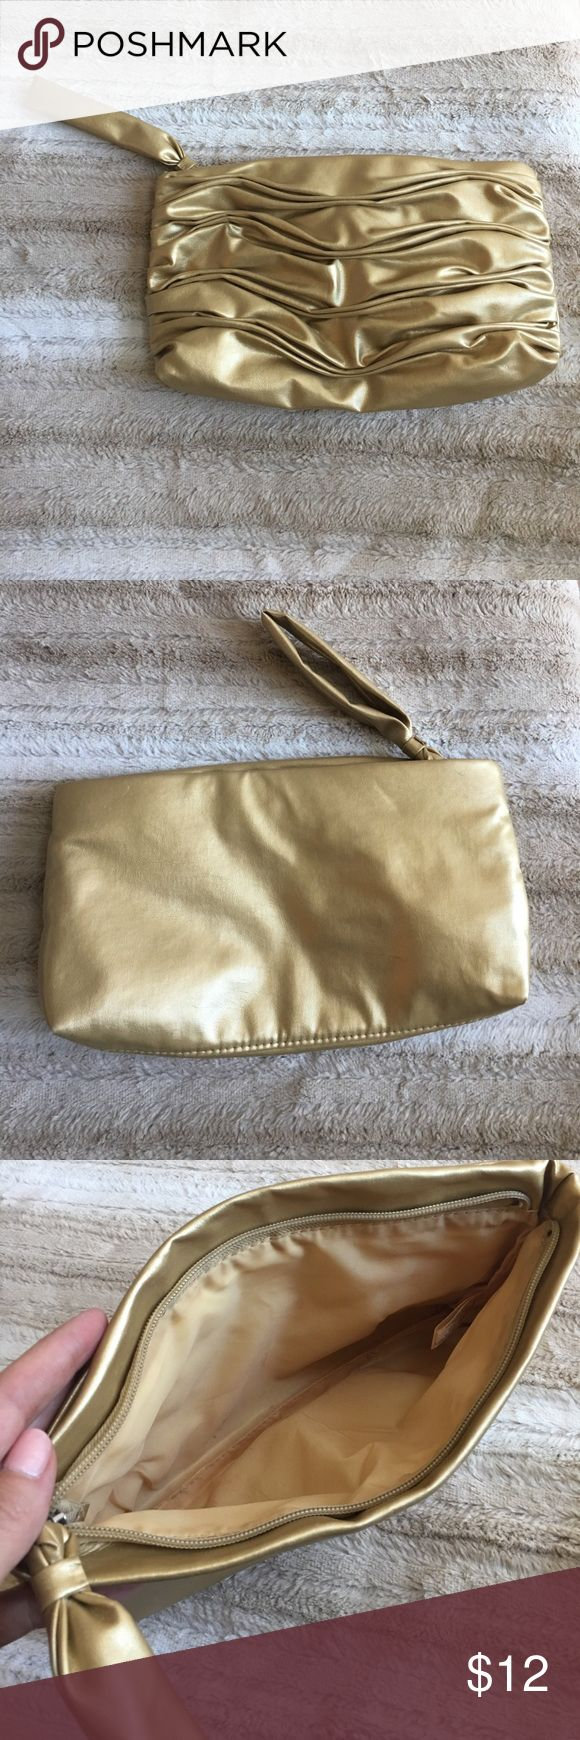 Go with everything gold clutch Dress up or down! The gold clutch is an outfit maker! Roomy inside! No inside pockets. A few small pen marks on liner inside. Exterior has no scratches on front. Small mark on back (see photo) Bags Clutches & Wristlets